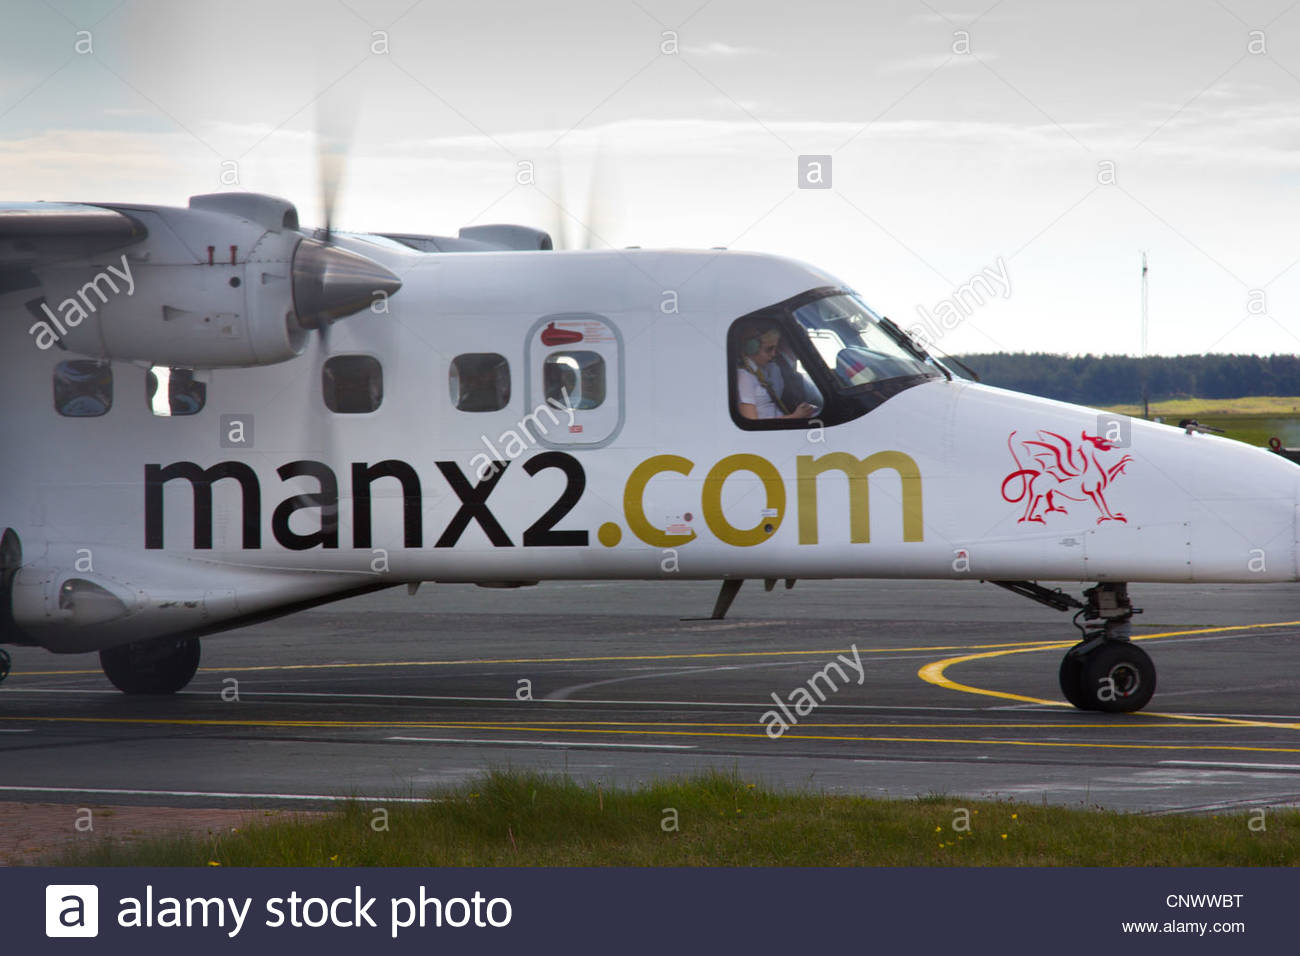 Manx2 aircraft arriving at Anglesey Airport terminal, RAF Valley, with pilot visible in cockpit - Stock Image